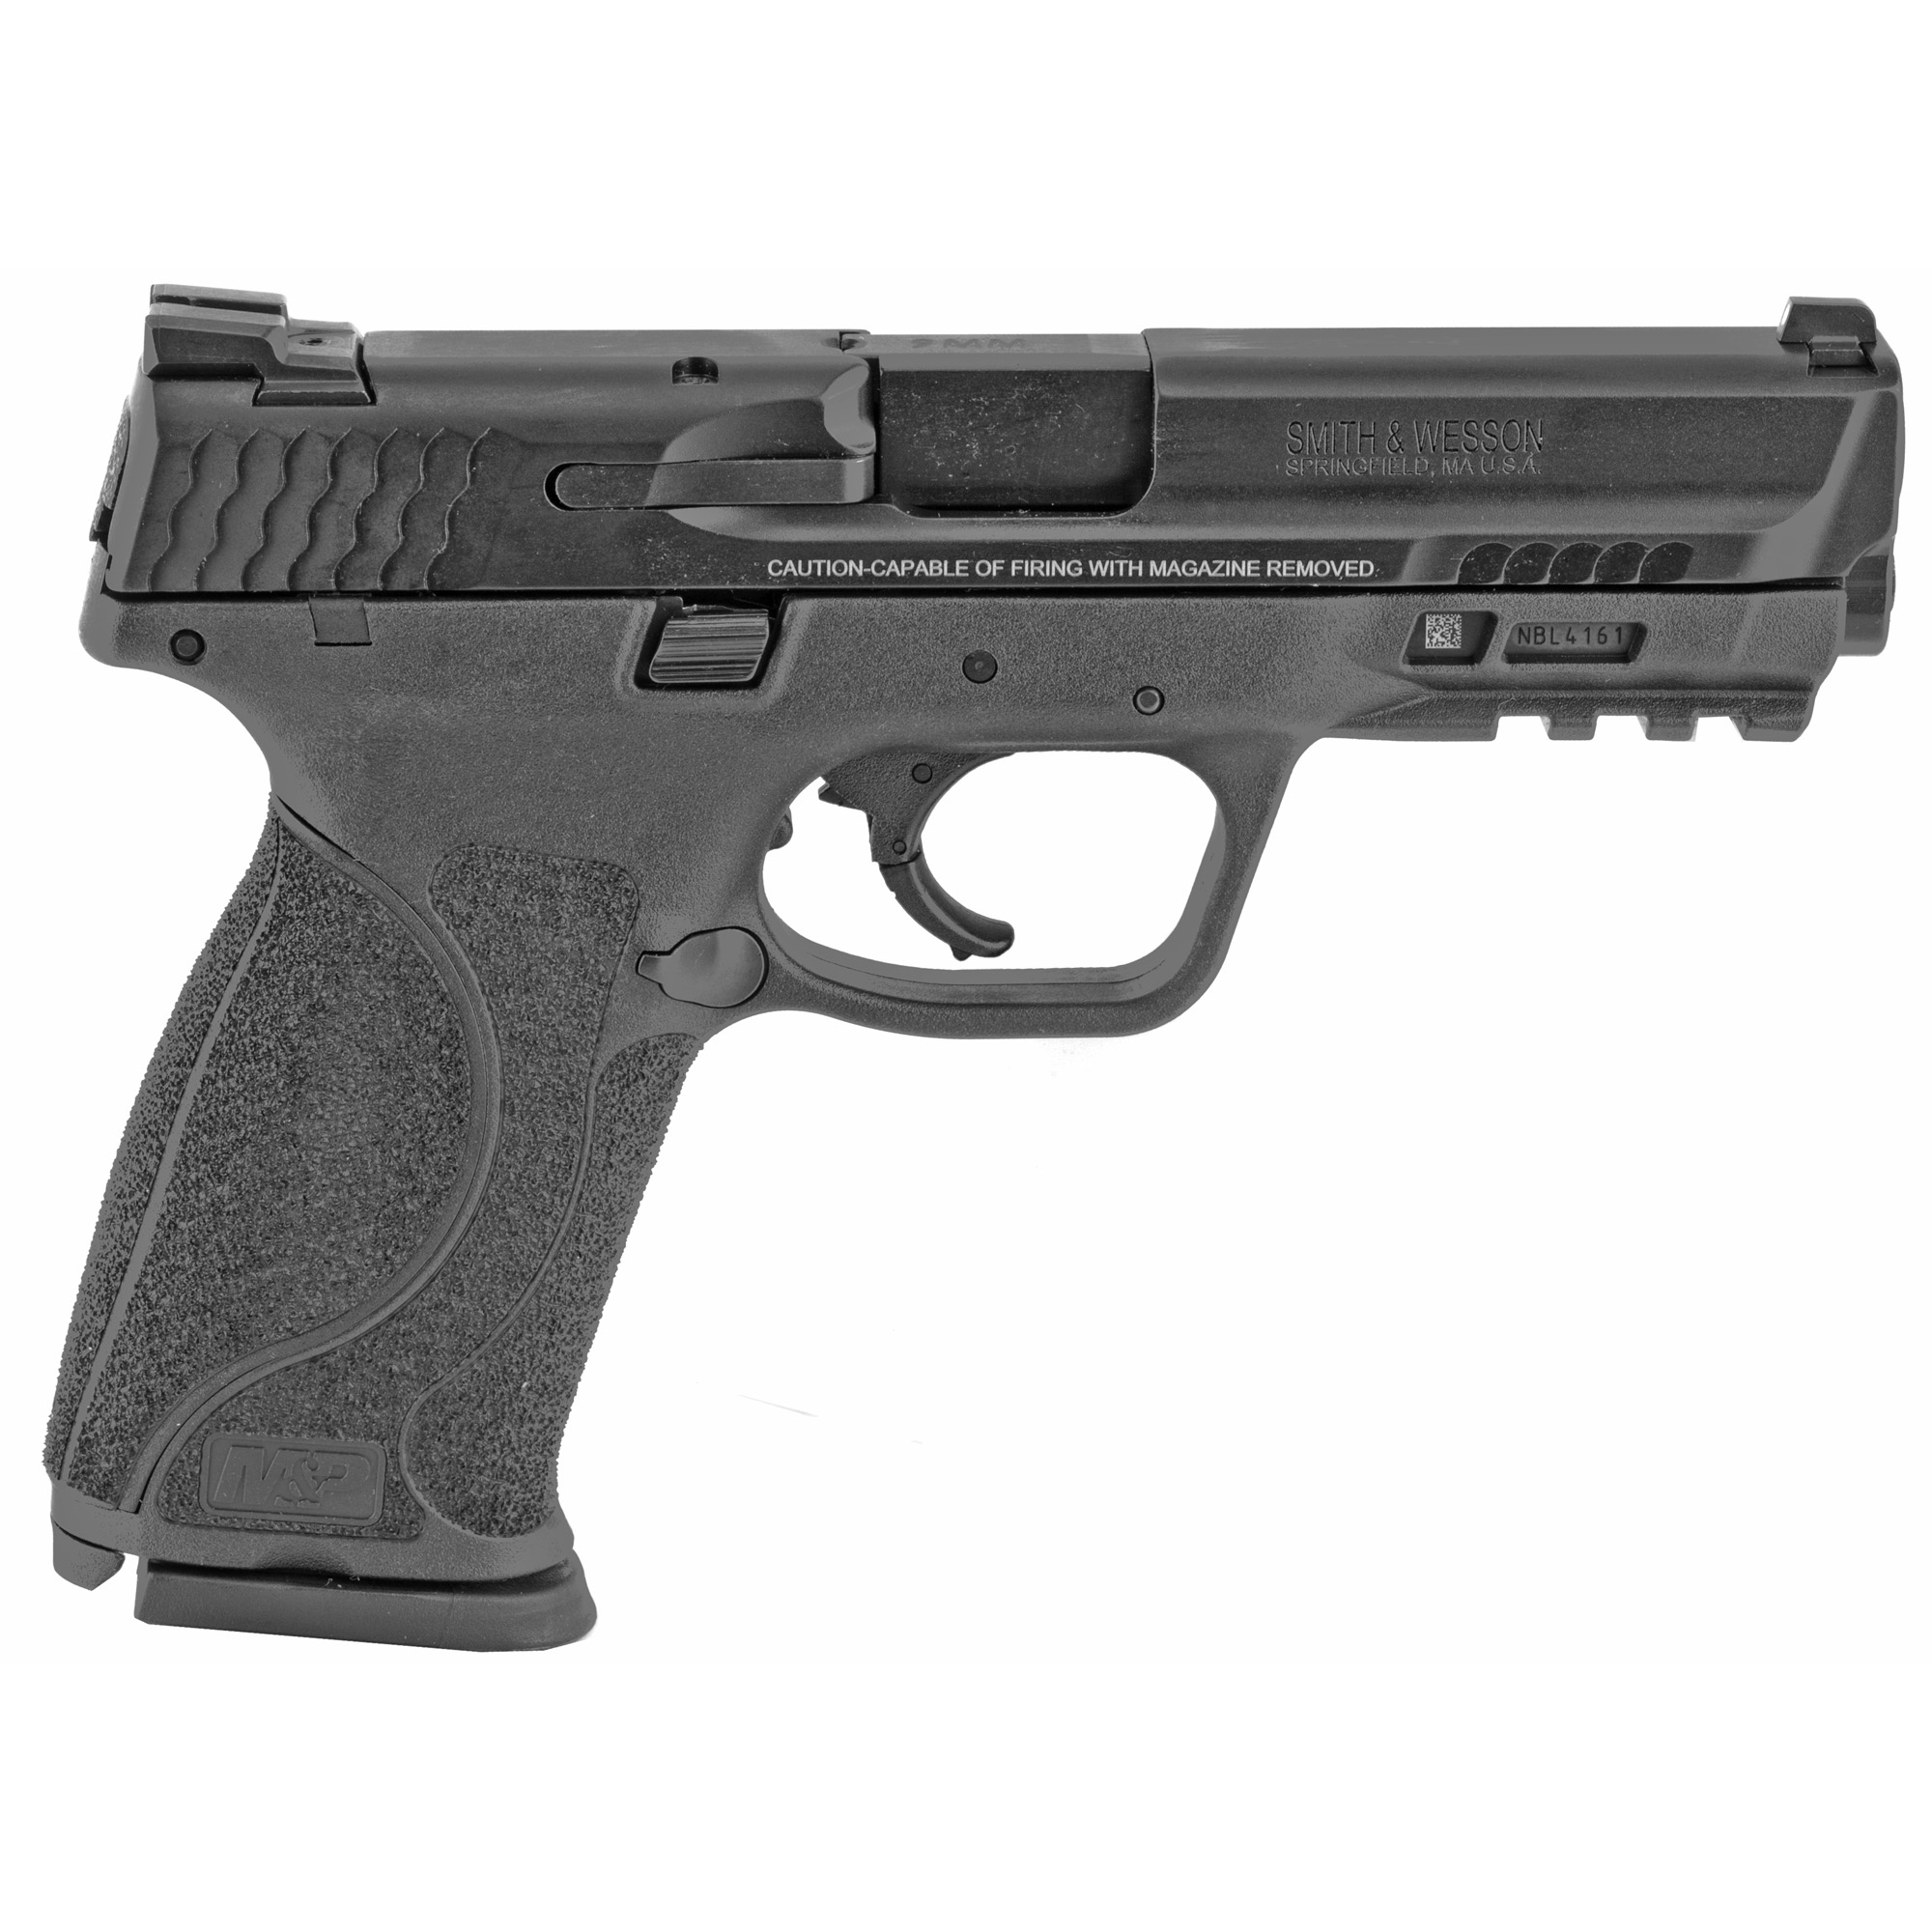 """Smith & Wesson M&P 2.0 Striker Fired 4.25"""" 9mm 10rd Fixed Sights - Black-img-1"""